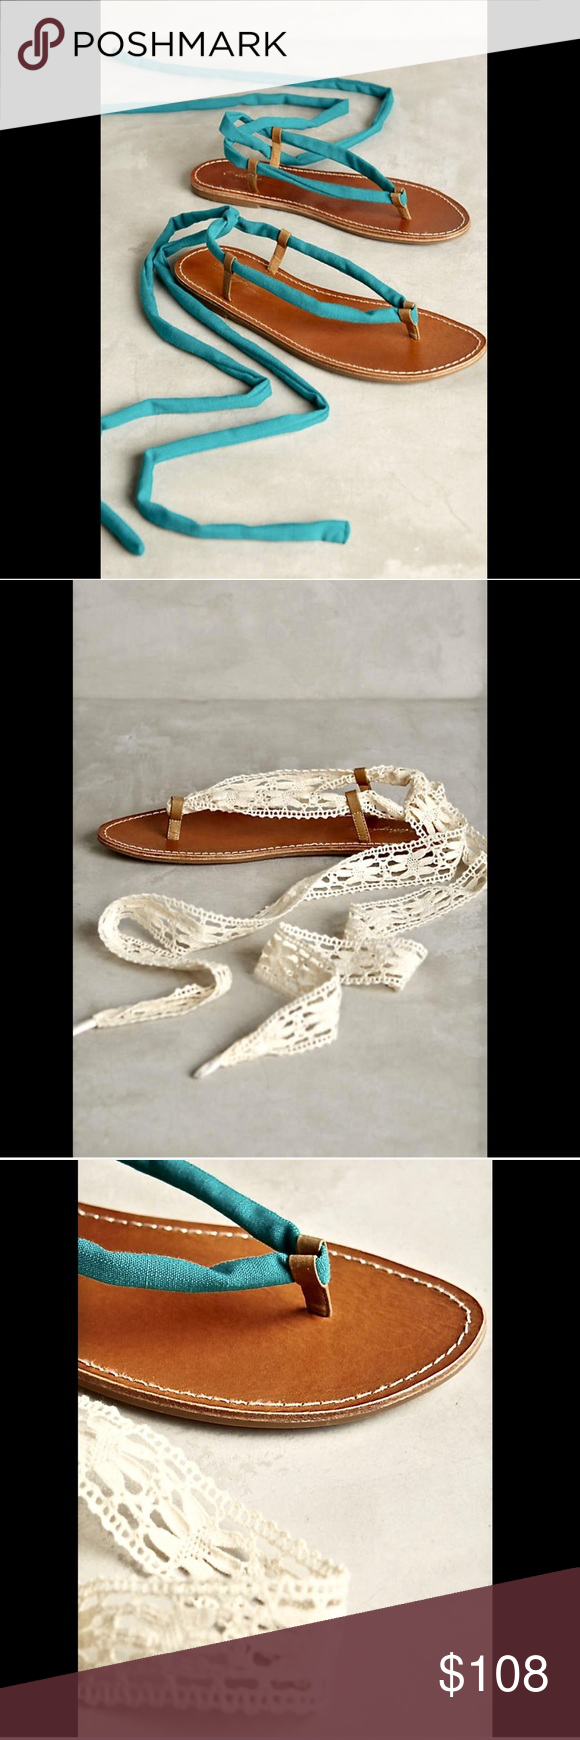 """Anthropologie Interchangeable Lace Up Sandals 9 Anthropologie Miss Albright Katie natural leather Interchangeable Lace Up Sandals  2 sandals in 1! Quick change on the natural tan flat footbed with a rubber sole either choose turquoise cotton lace up wrap ankle laces or the extra pair of ivory lace laces New With Box  *  Size:  9  *Please Note:  These Sandals Run True To Size  footbed measures:  10.5""""  x  3.5""""  Check out my other item! Be sure to add me to your favorites list! Anthropologie…"""